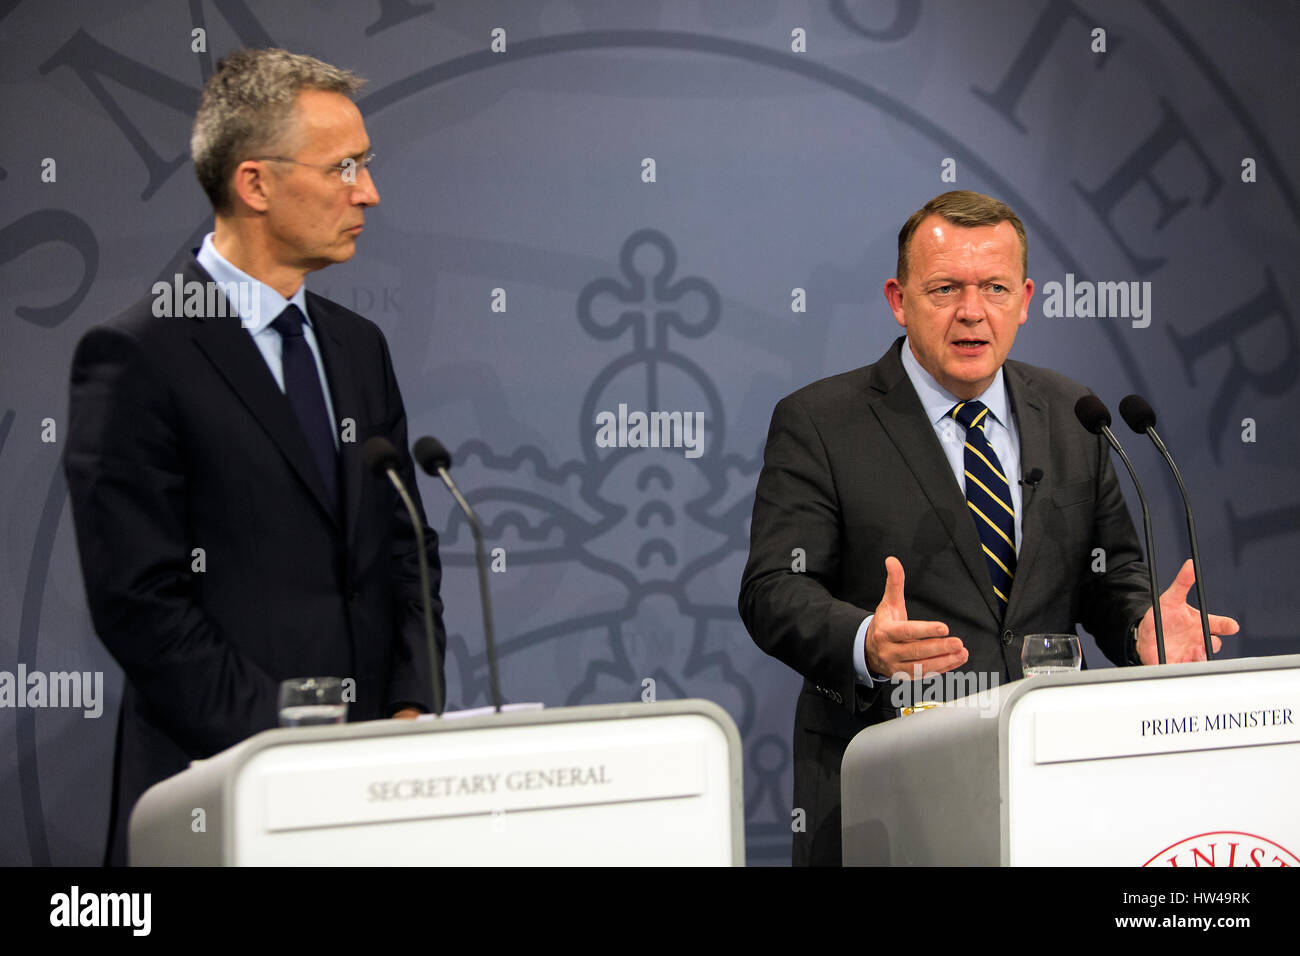 Danish Prime Minister Lars Lokke Rasmussen (R) speaks during a press conference together with NATO Secretary General - Stock Image